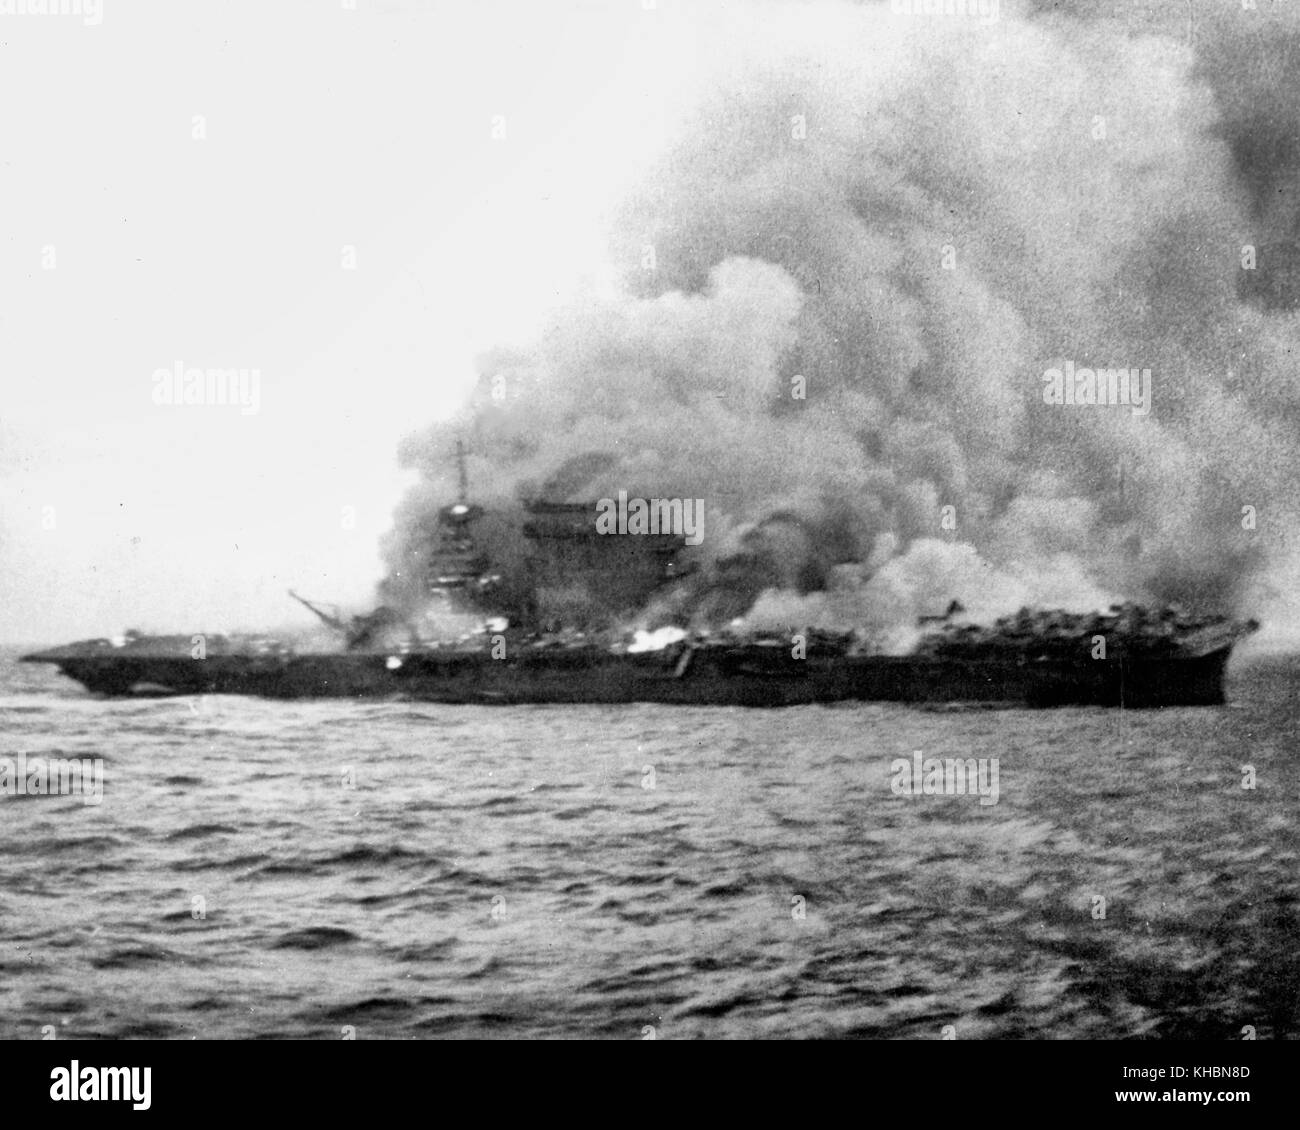 The U.S. Navy aircraft carrier USS Lexington (CV-2), burning and sinking after her crew abandoned ship during the - Stock Image